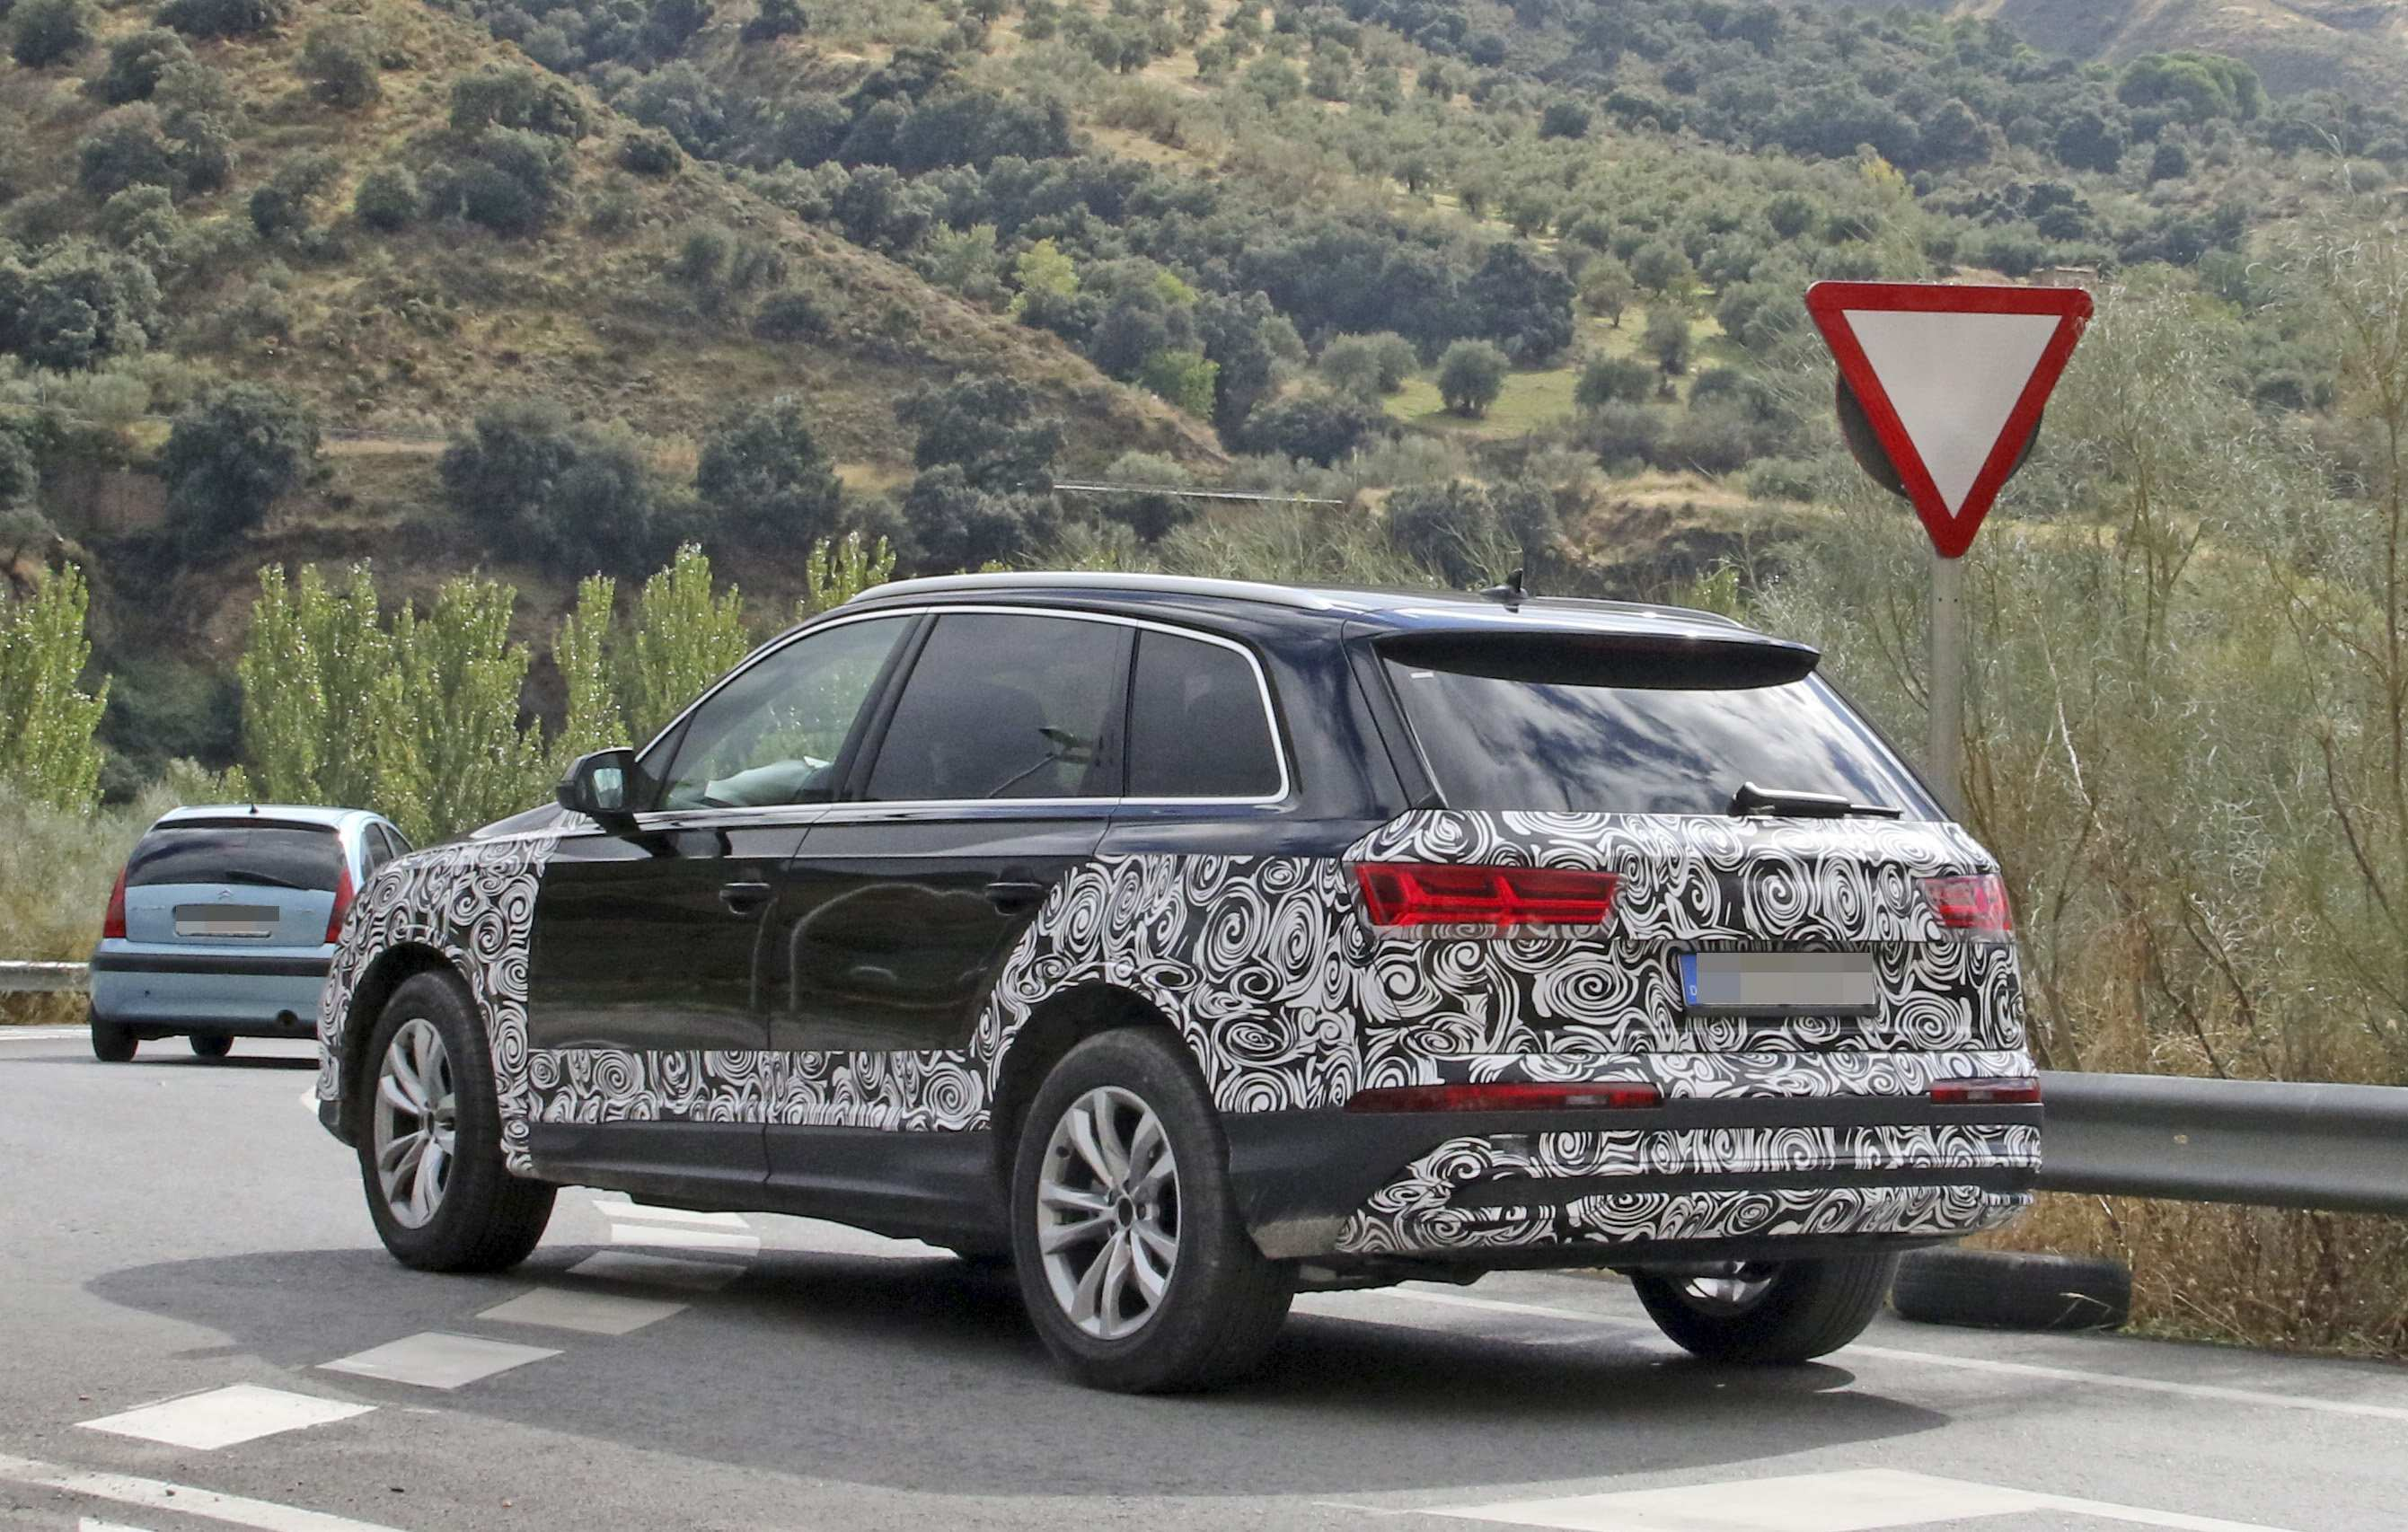 52 The Best When Will The 2020 Audi Q7 Be Available Engine